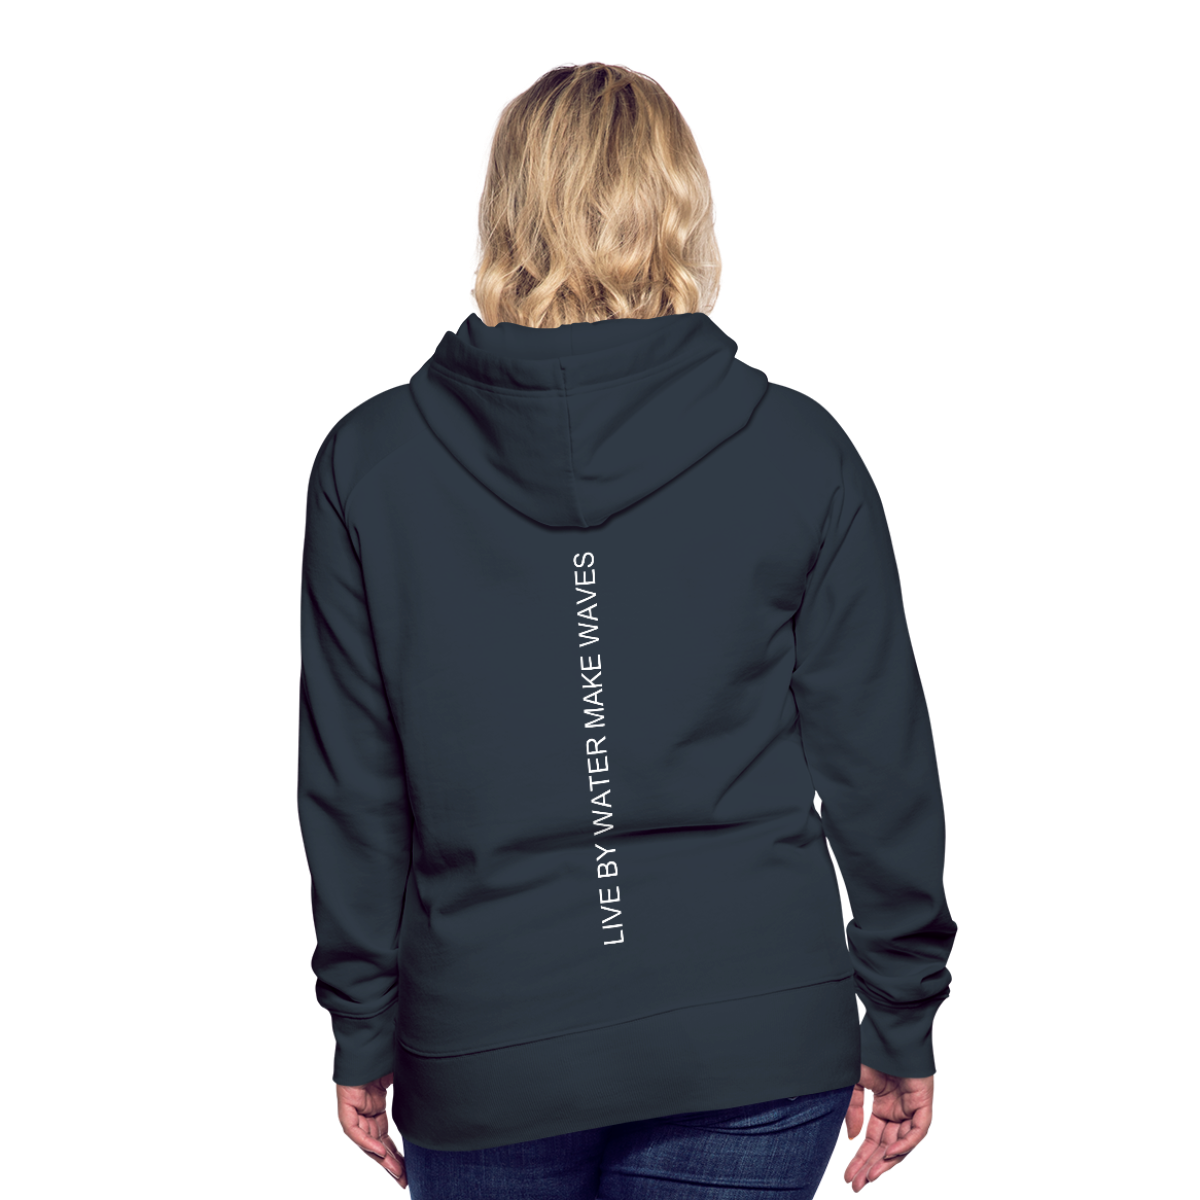 Beach Life-Live by Water 2-sided Women's Hoodie